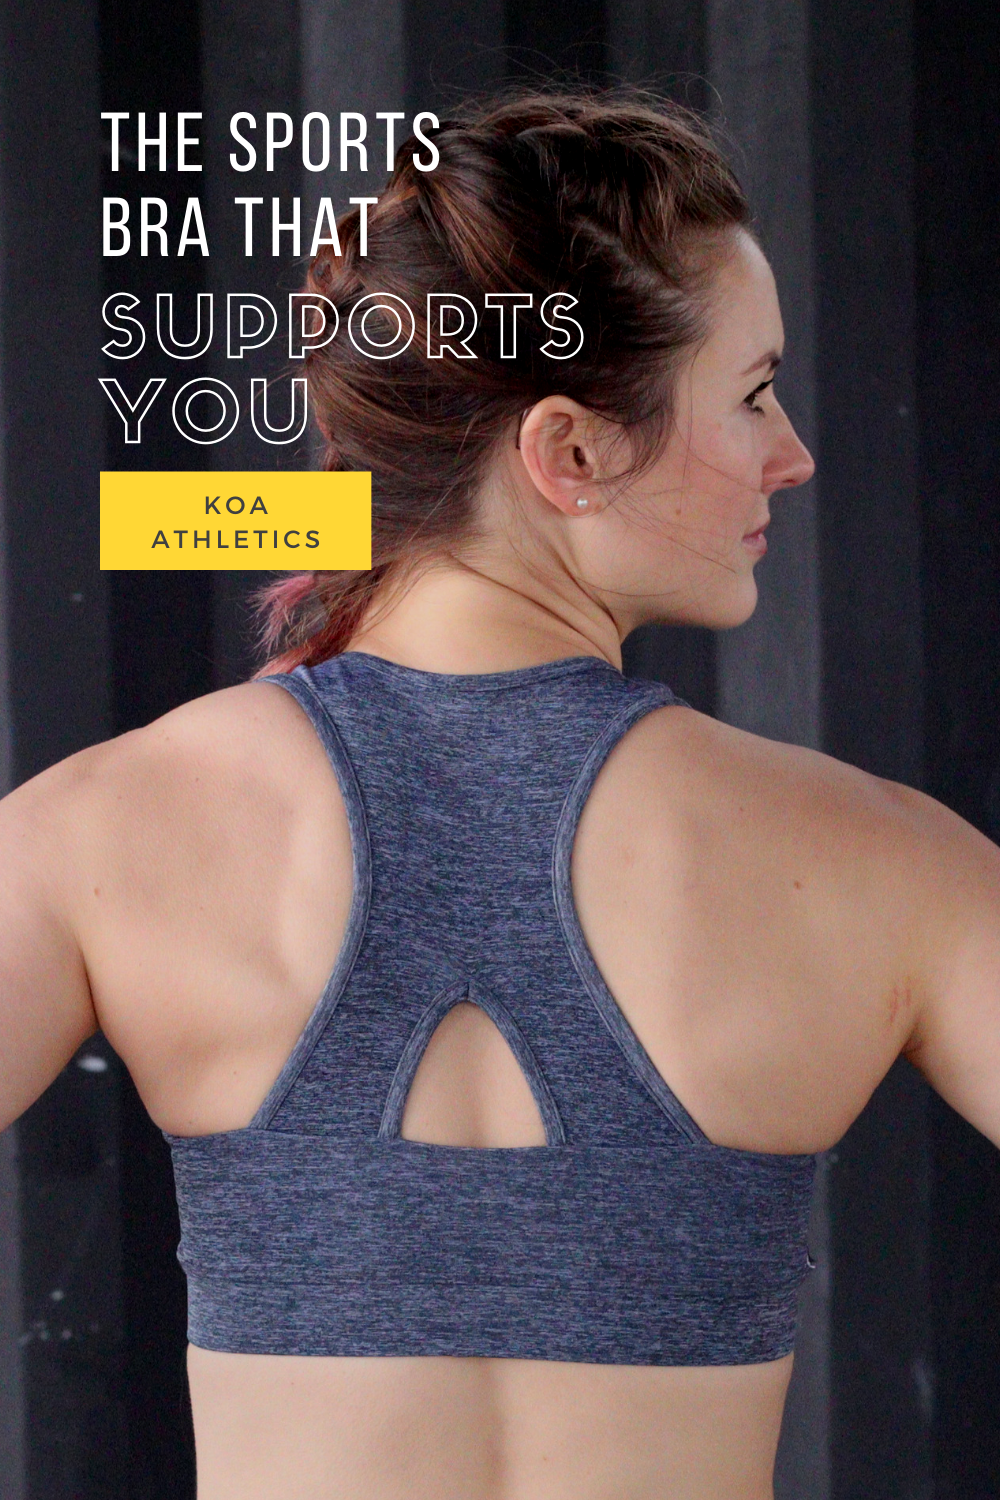 All American made. The perfect sports bra. Stays put, solid, and supportive. Padding that stays: no...